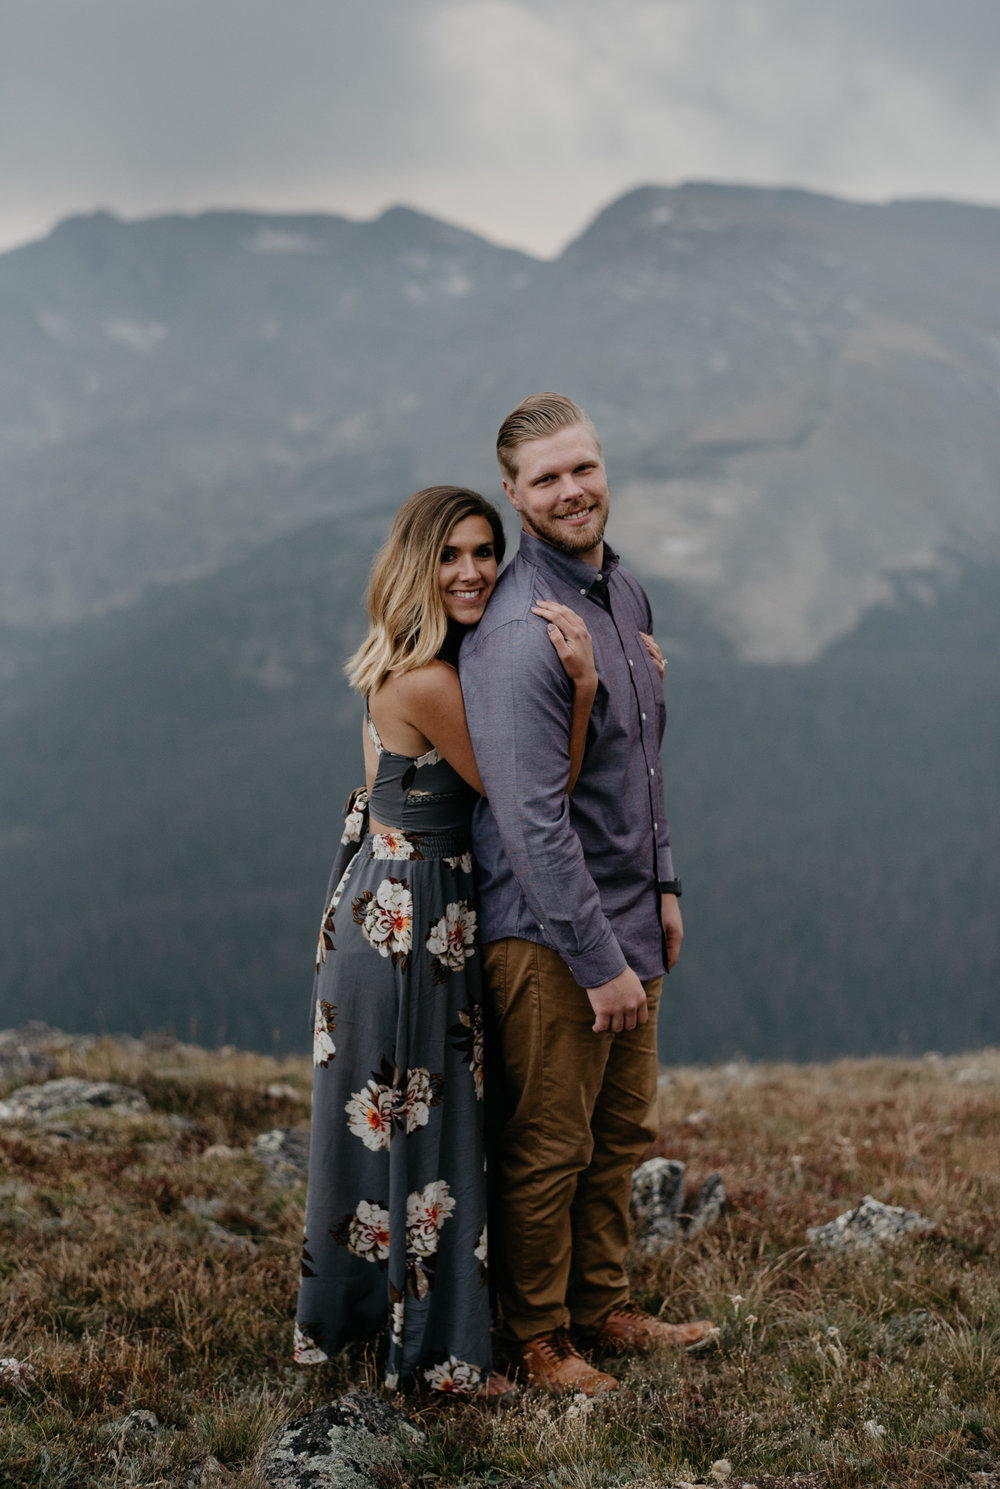 Denver, Colorado wedding photographer. Colorado mountain wedding photos.